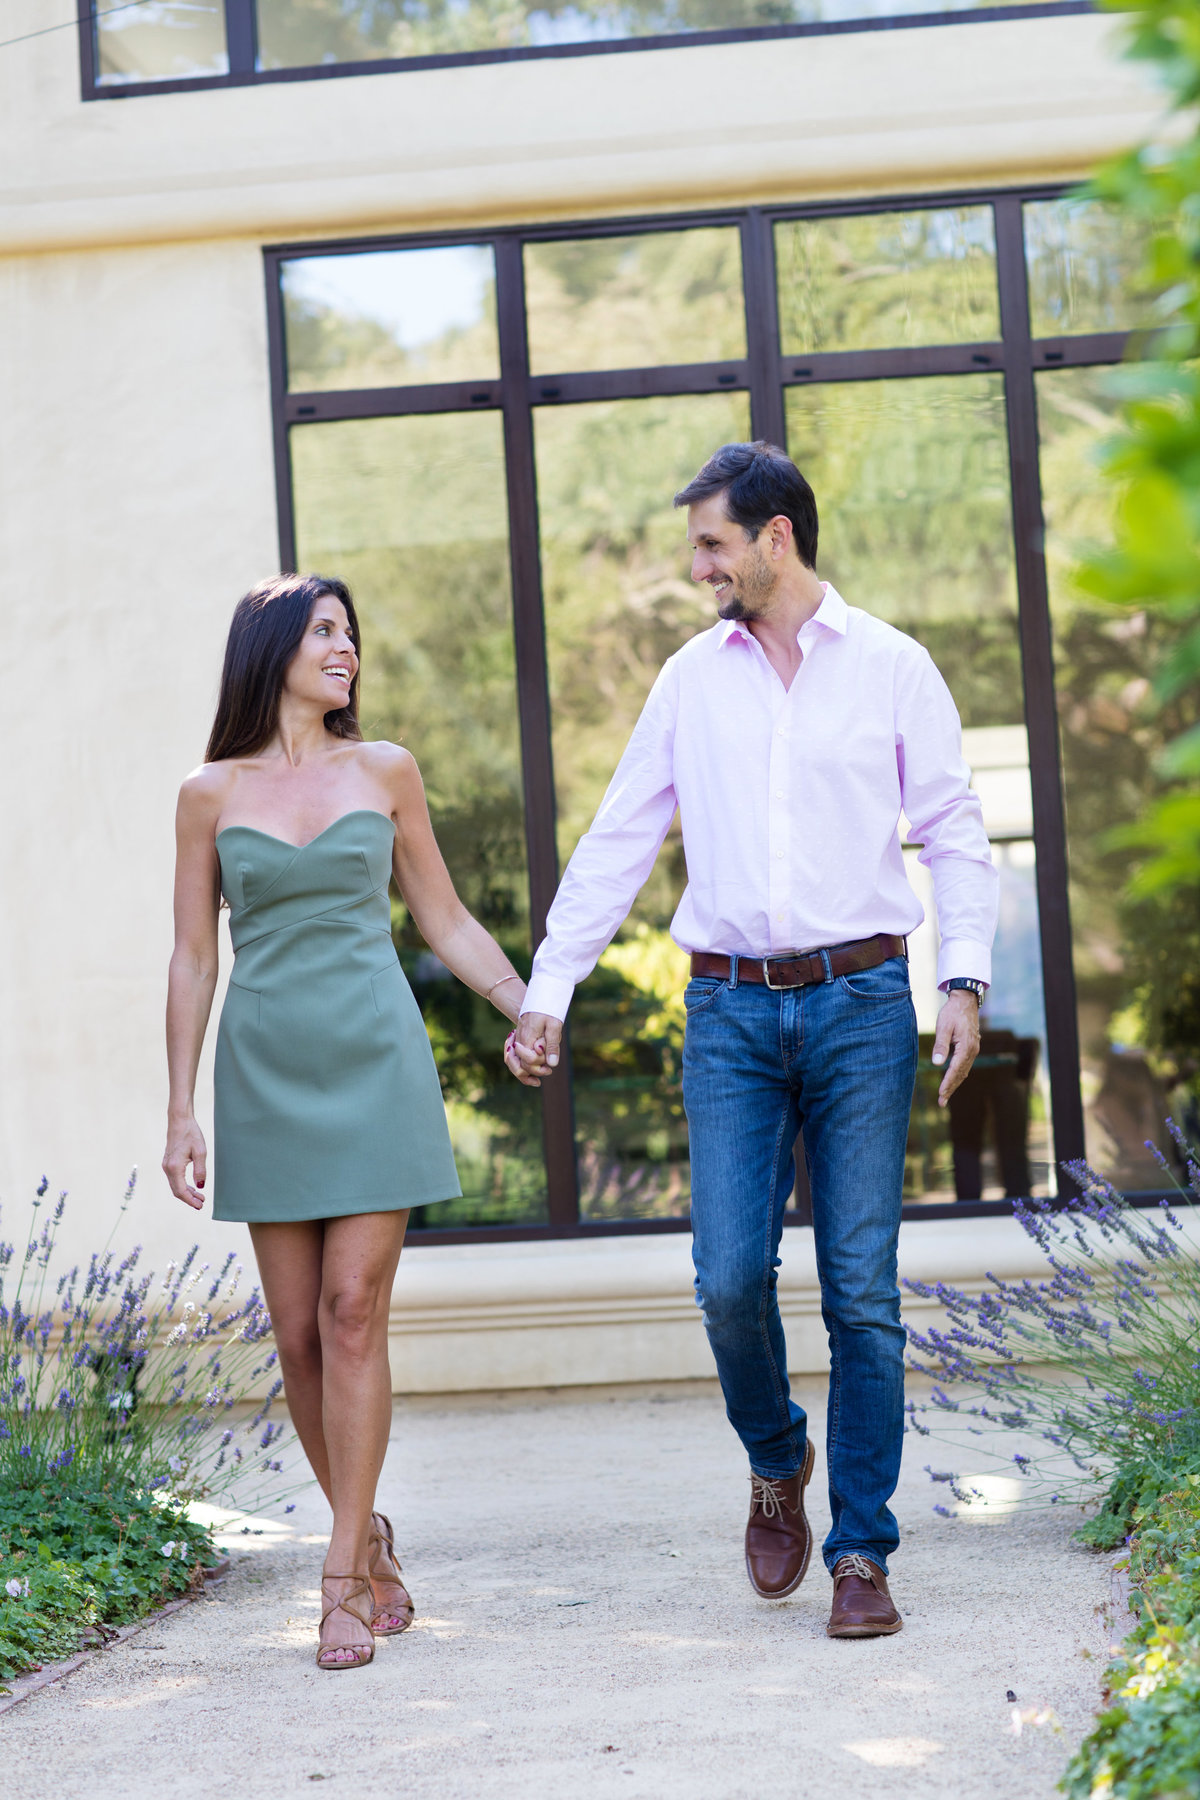 San Francisco Engagement Photographer, session at a Private Home in Atherton, CA